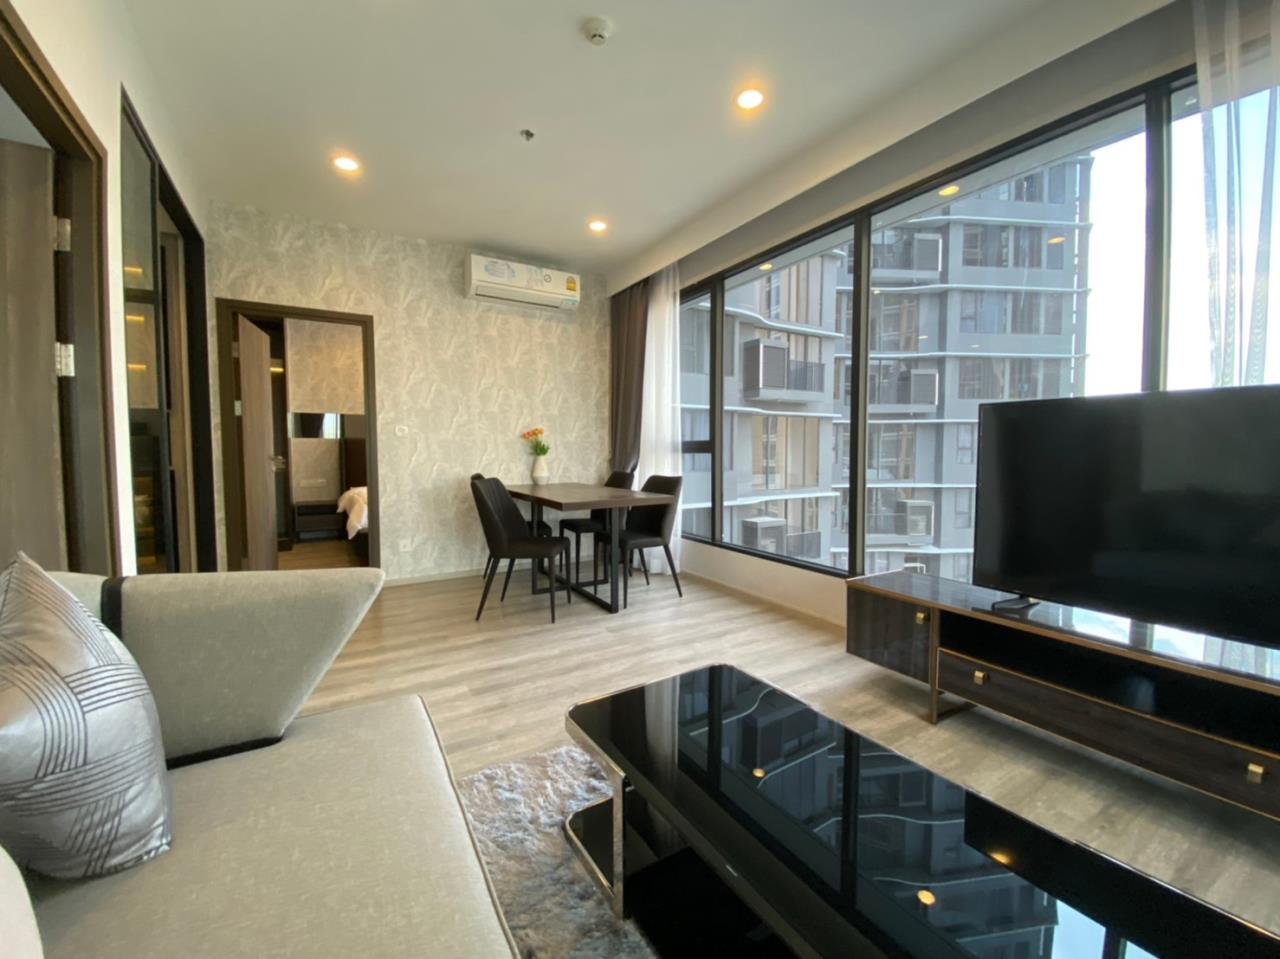 Su Agent Co.,Ltd Agency's BS074 Ideo Mobi Asoke 55 sq.m 2 Bedroom for rent 41,000 Baht/Month 10